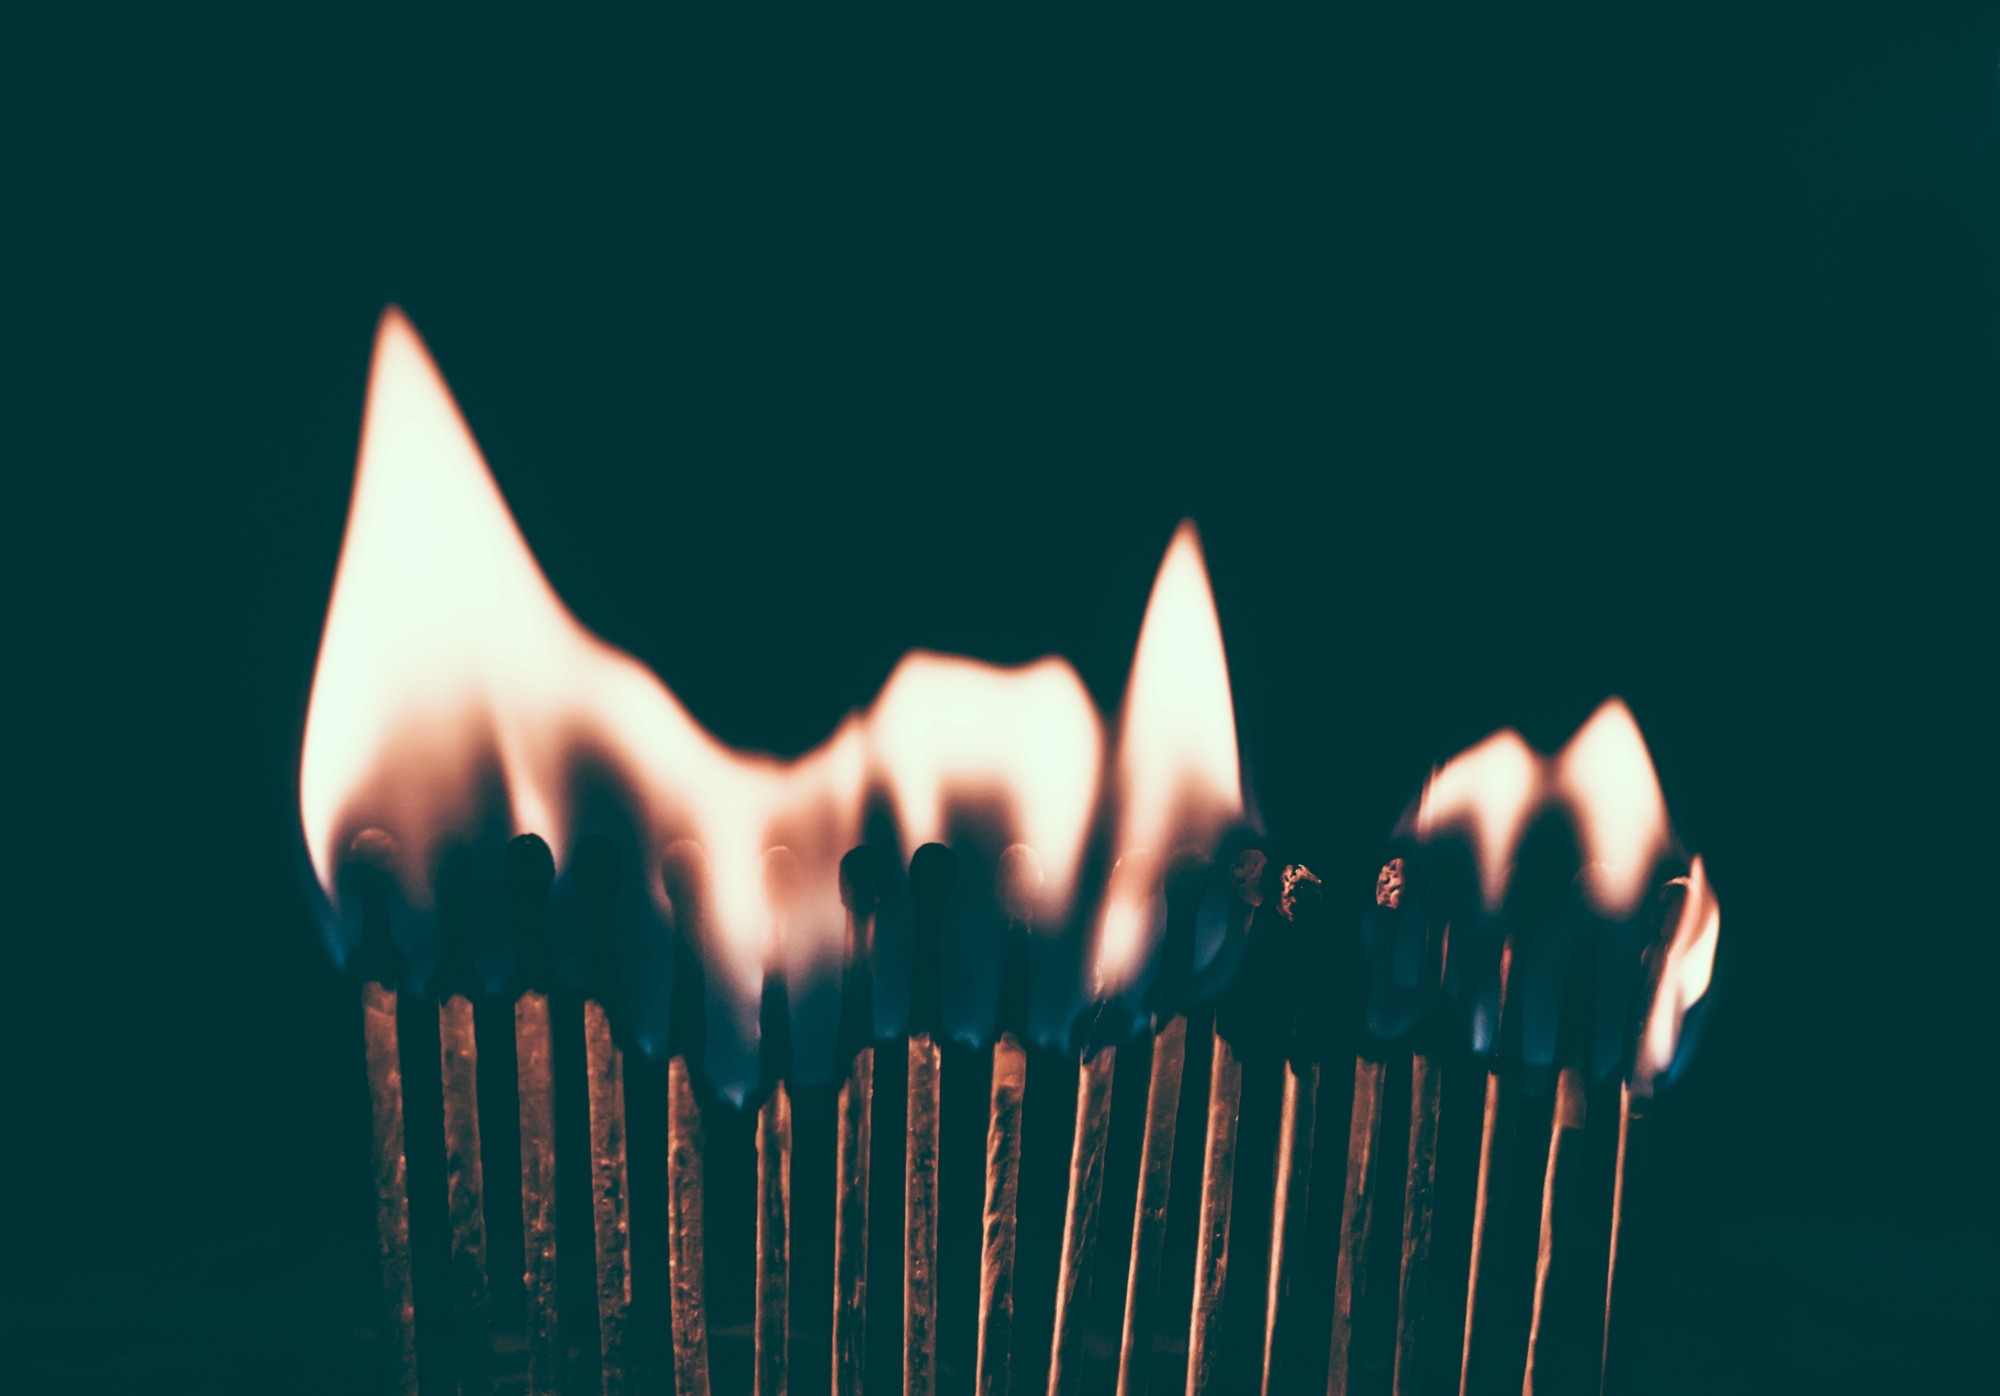 Matchsticks in a line, burning